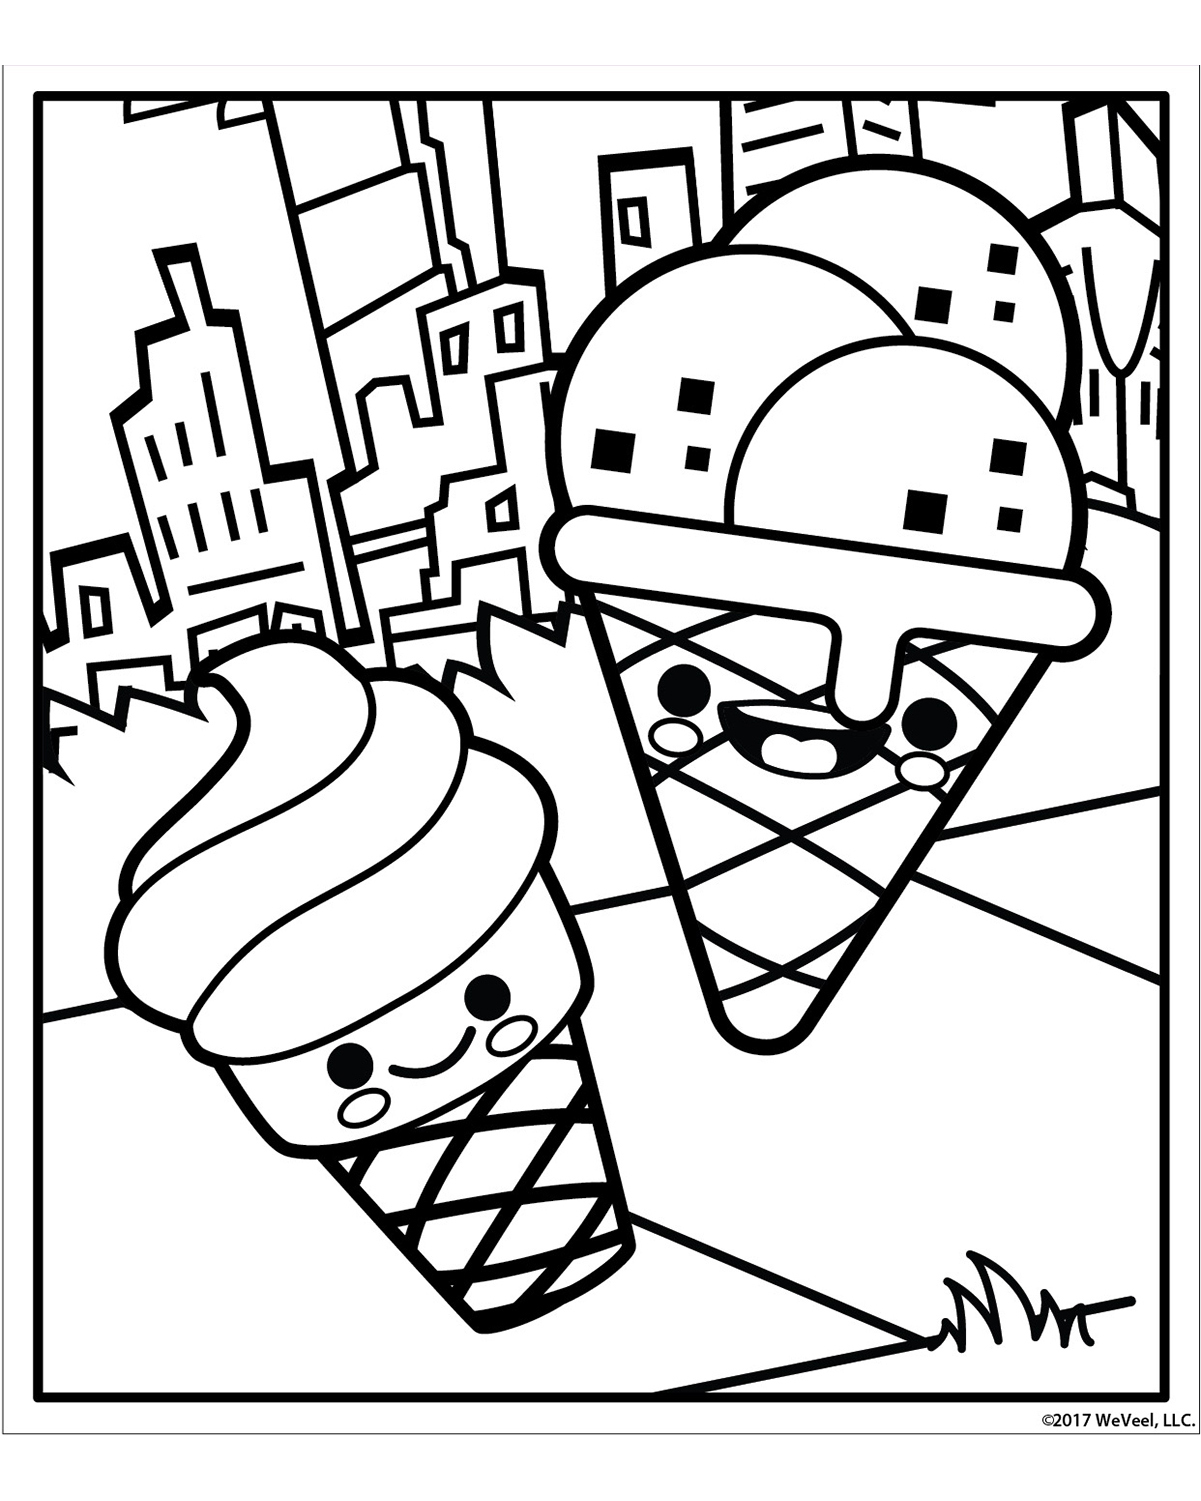 sugar rush coloring pages - photo#2